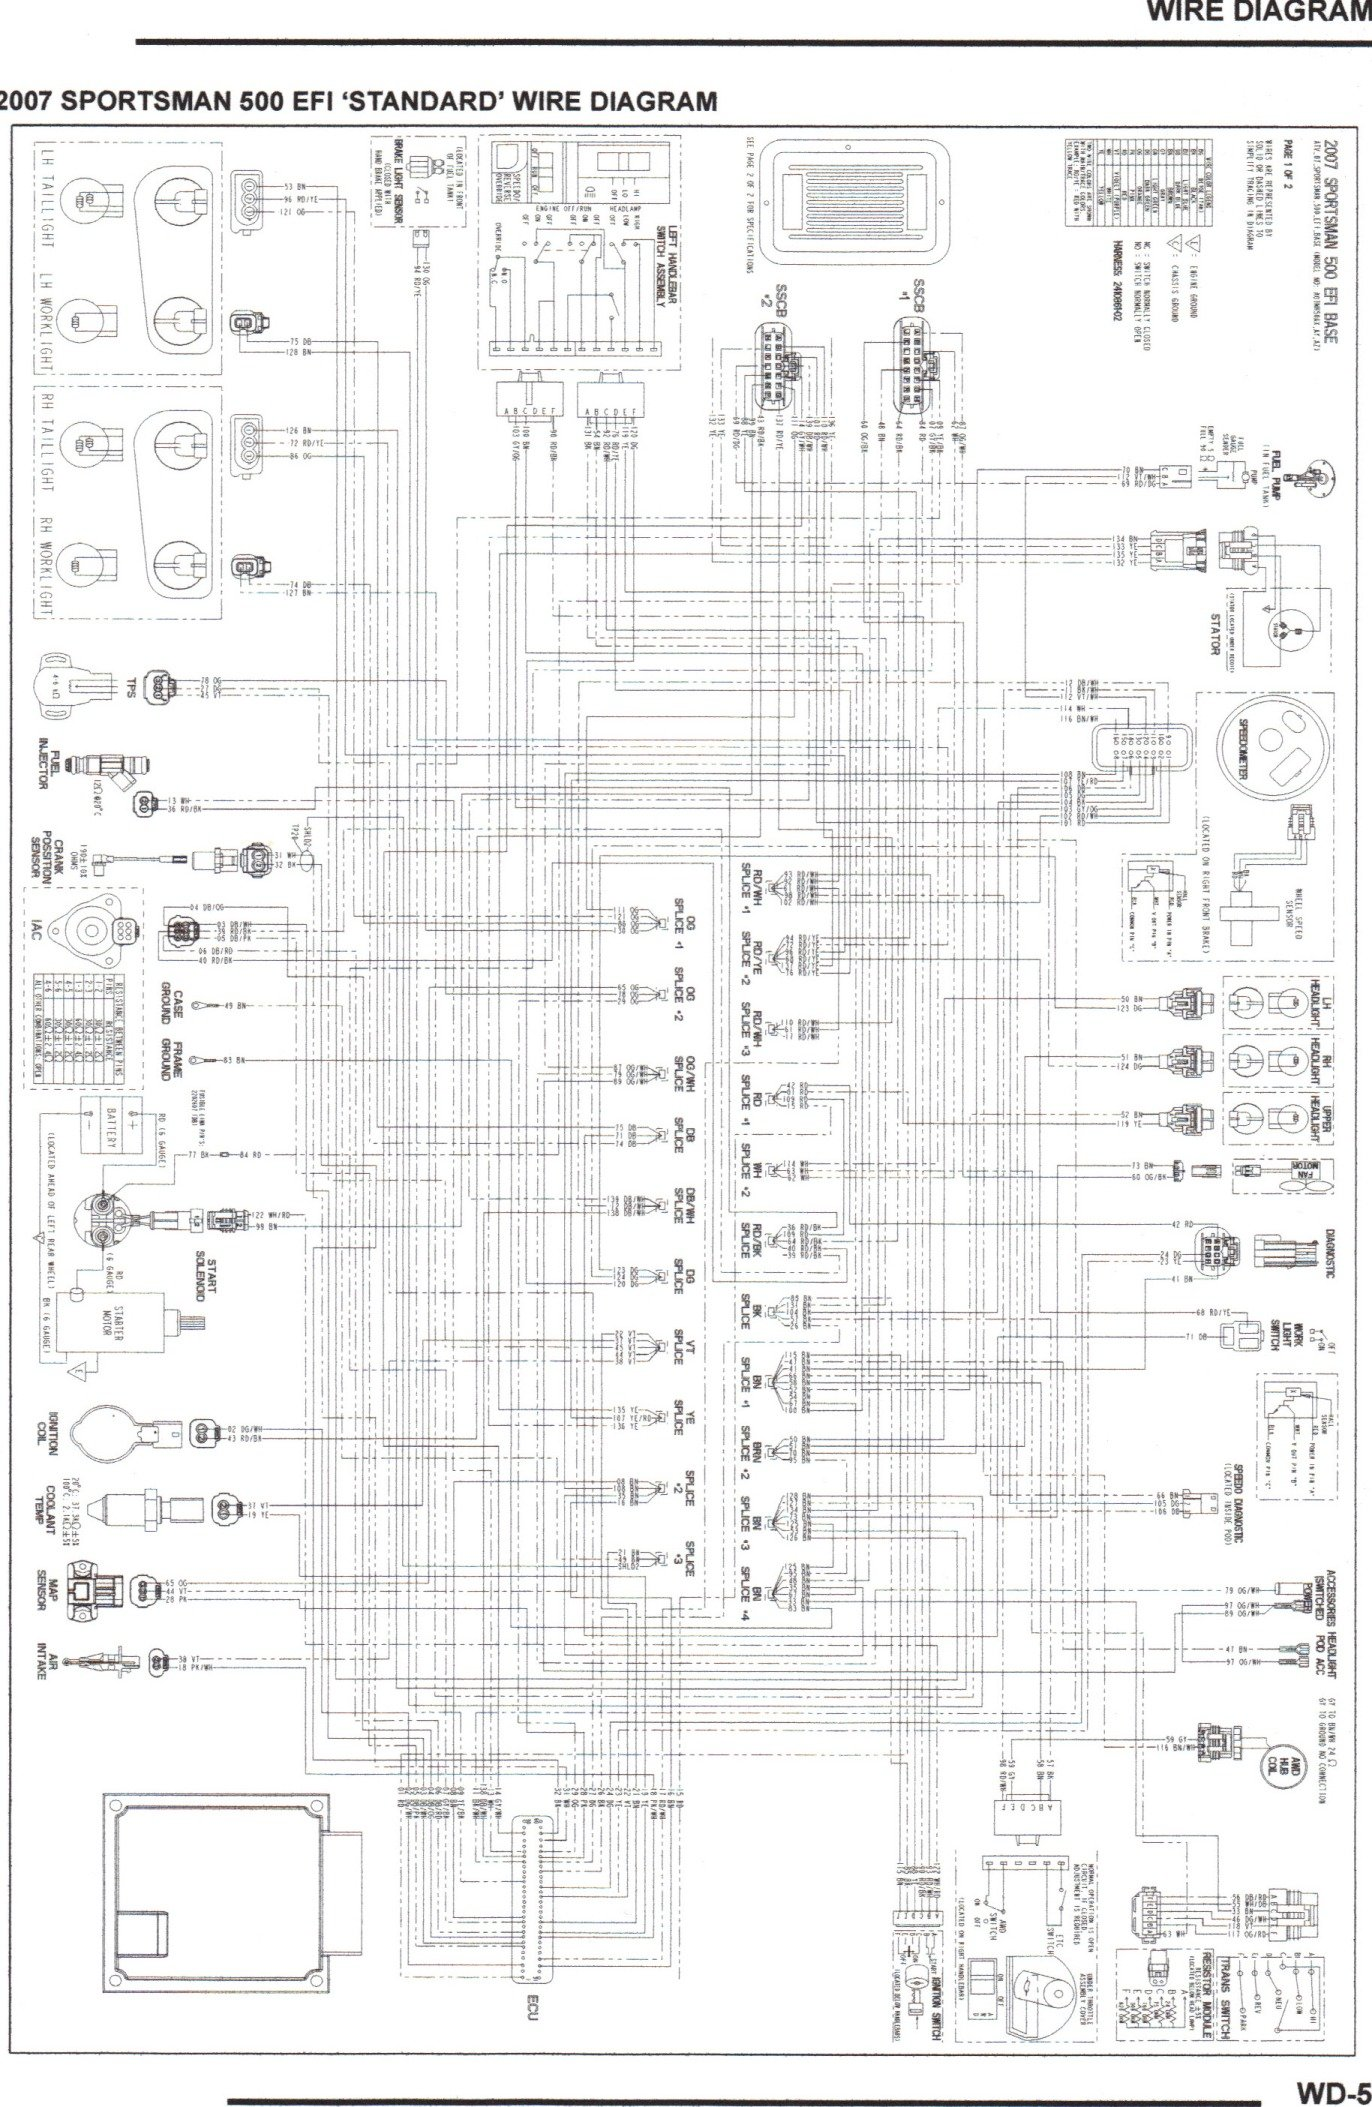 polaris ranger 700 efi wiring diagram polaris wiring diagrams online mark polaris ranger efi wiring diagram